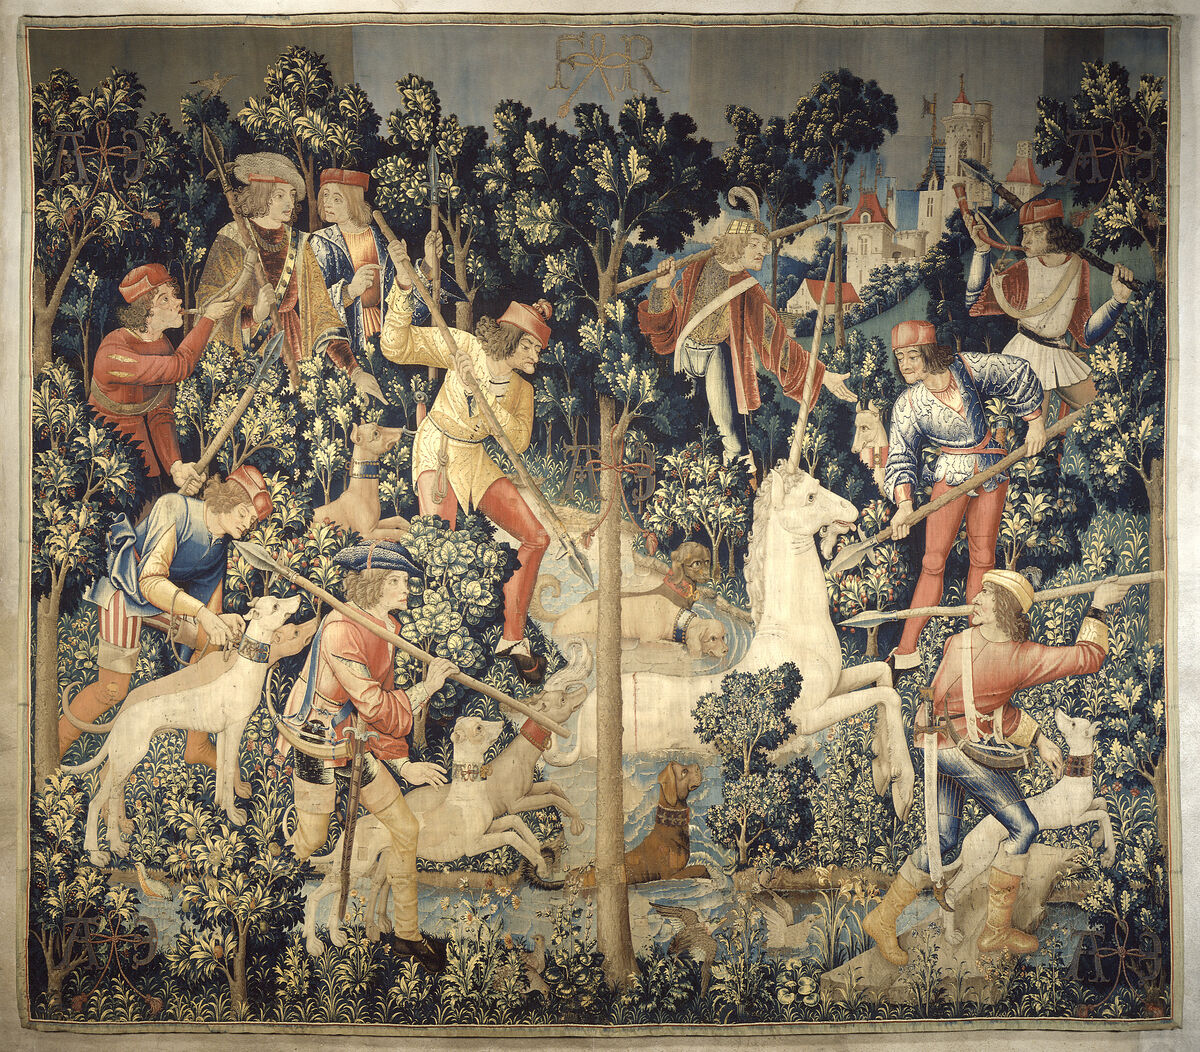 The Unicorn is Attacked (from the Unicorn Tapestries), 1495-1505. Gift of John D. Rockefeller Jr., 1937. Image courtesy of the Metropolitan Museum of Art.